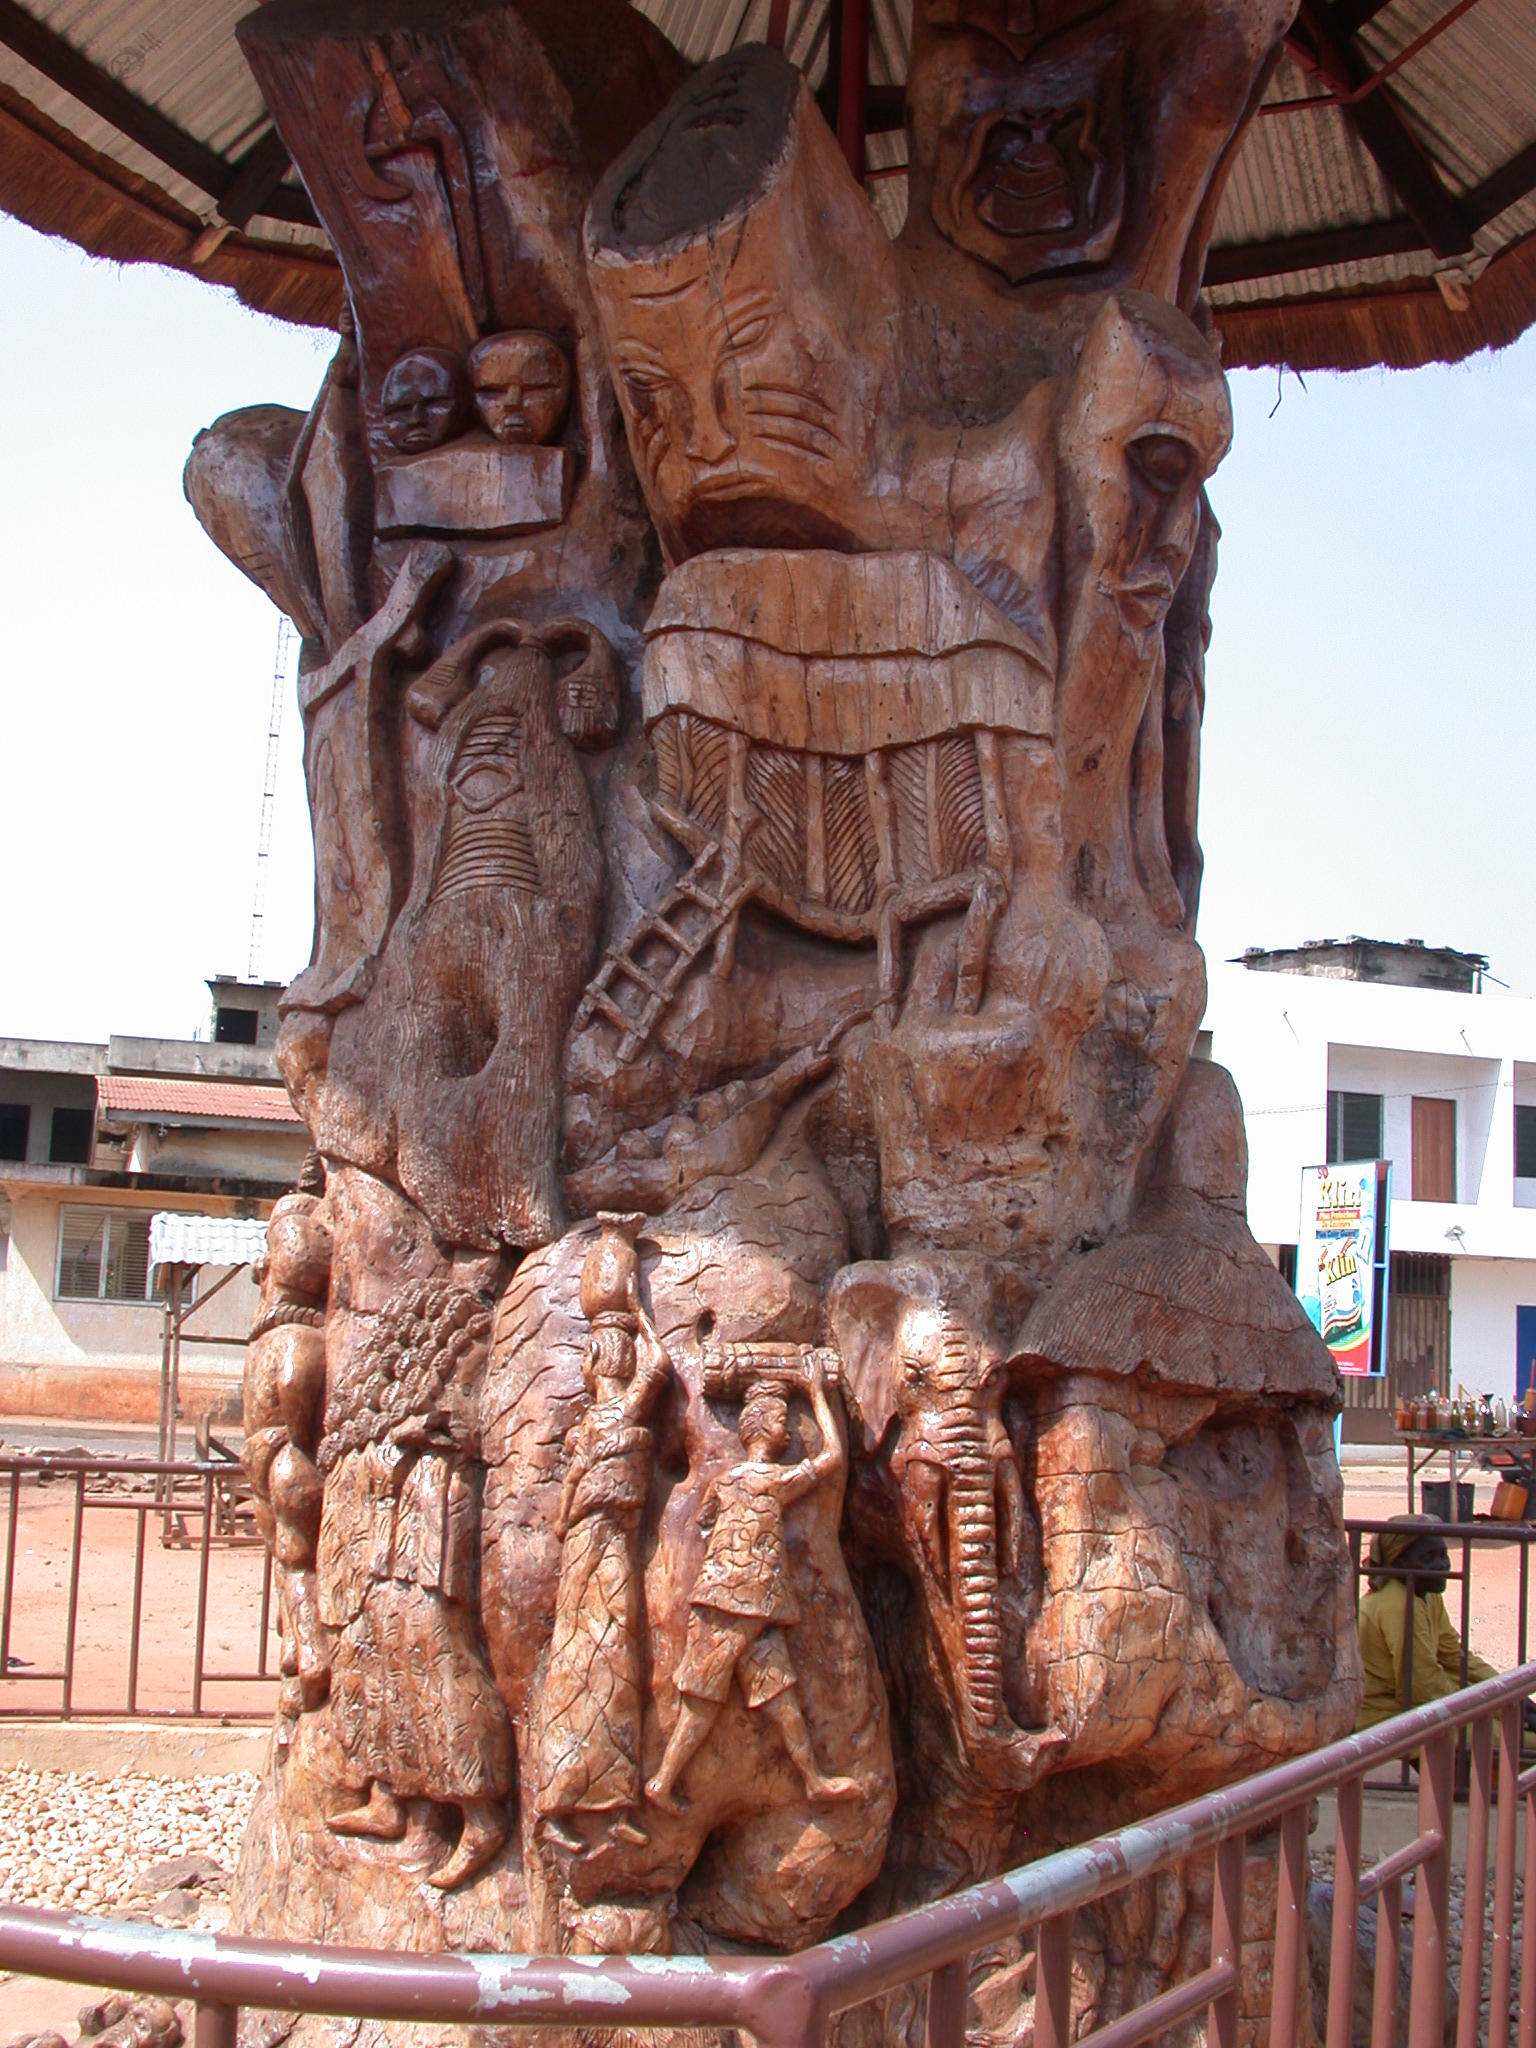 Tree Sculpture of Local History, Ouidah, Benin